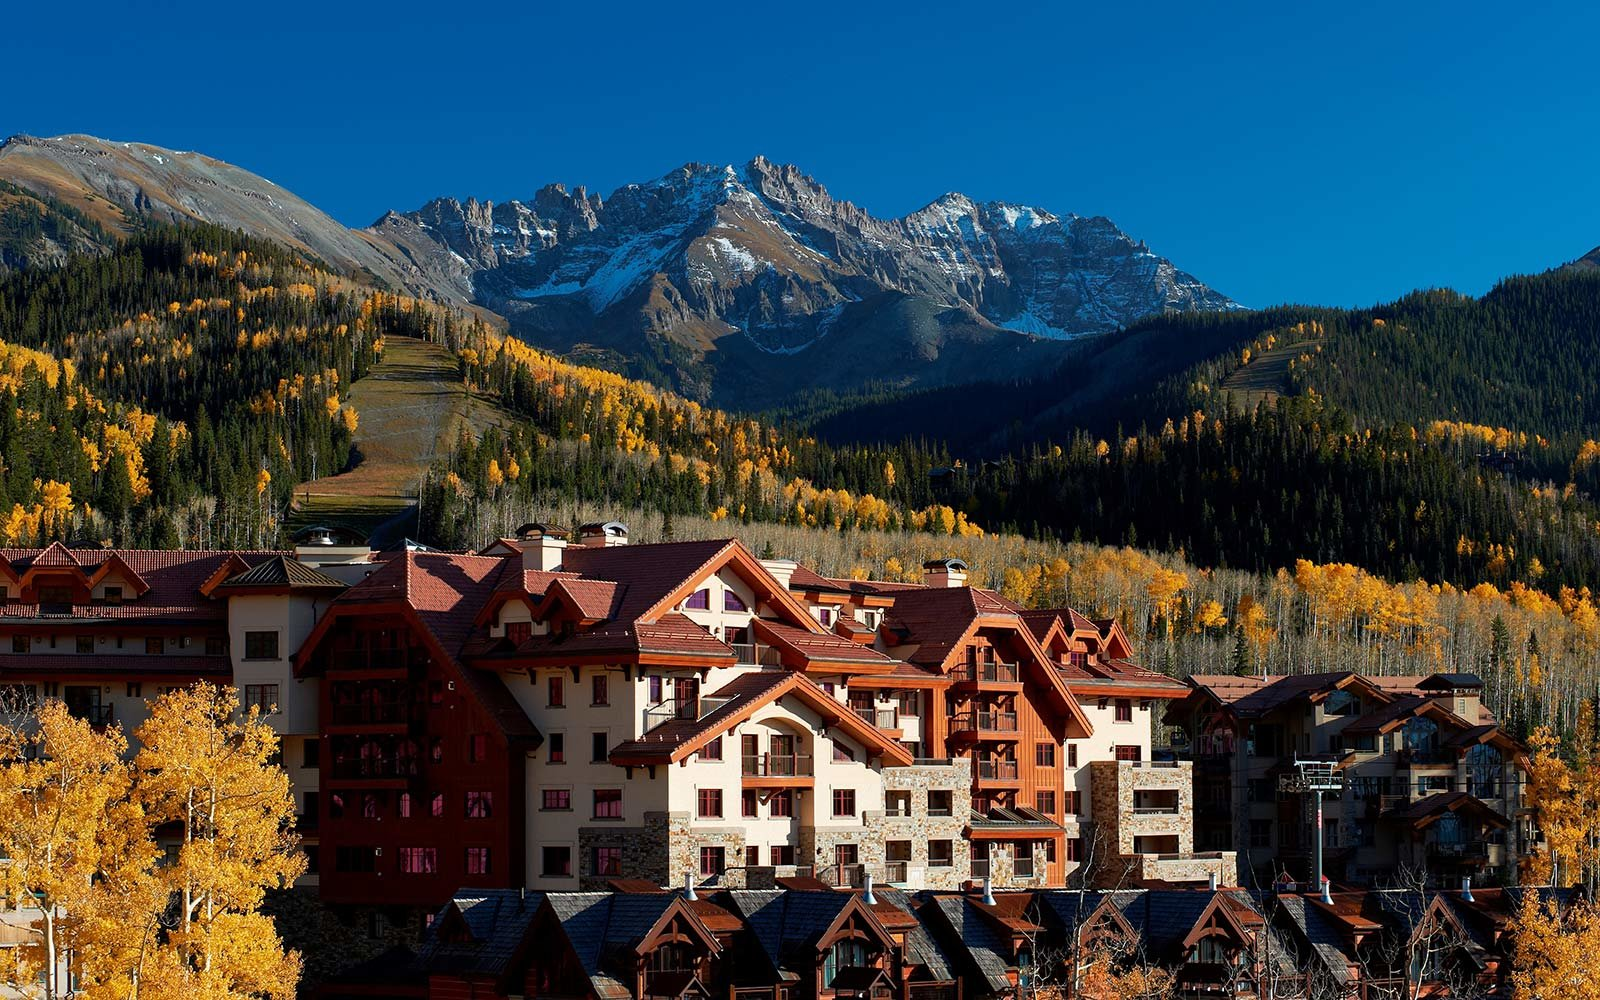 The Madeline Hotel, Telluride, Colorado